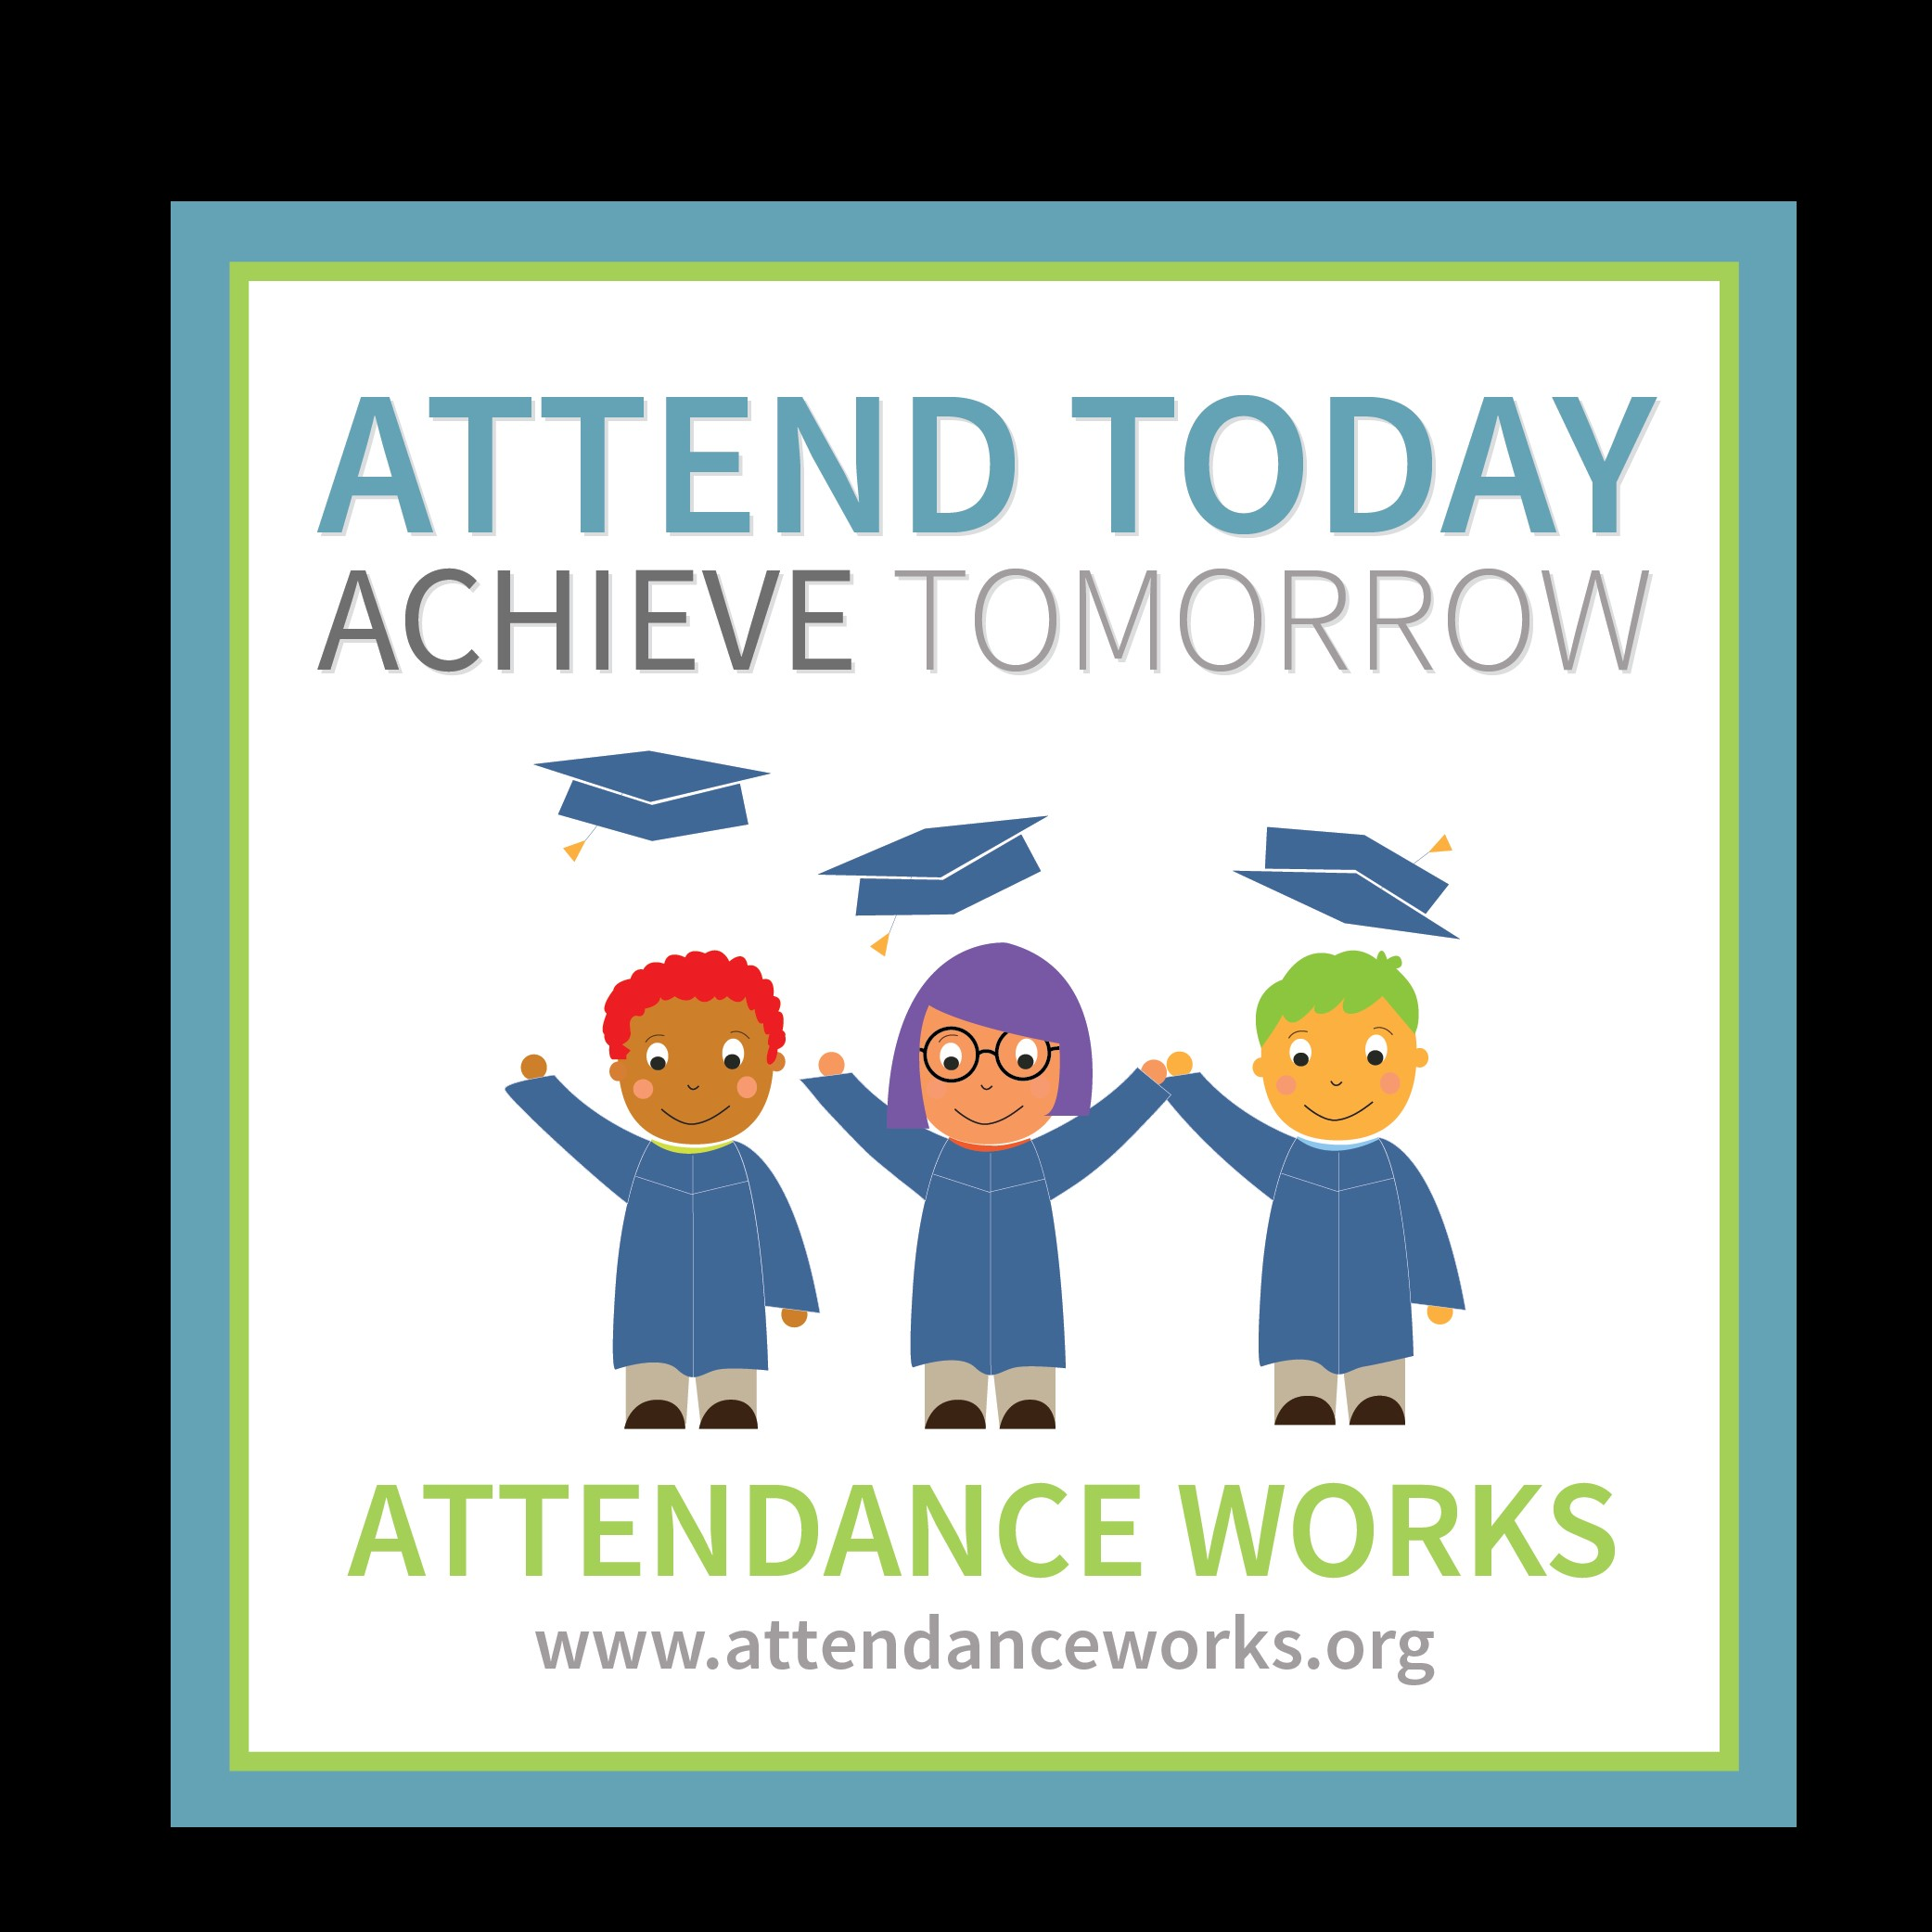 Attend today and Achieve Tomorrow